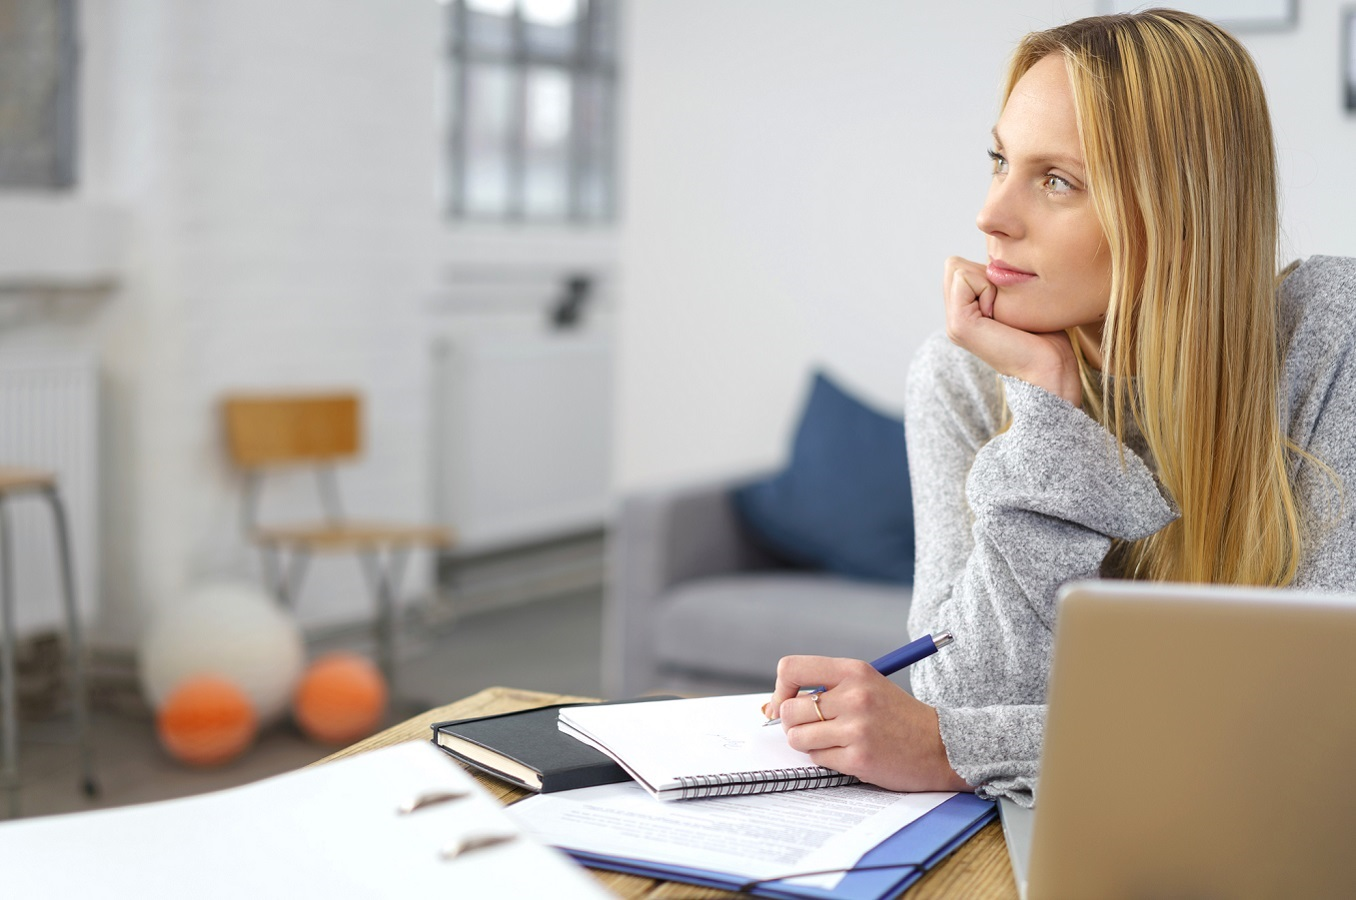 Career Coaching Workshop London: Woman Working Out Her Next Career Move